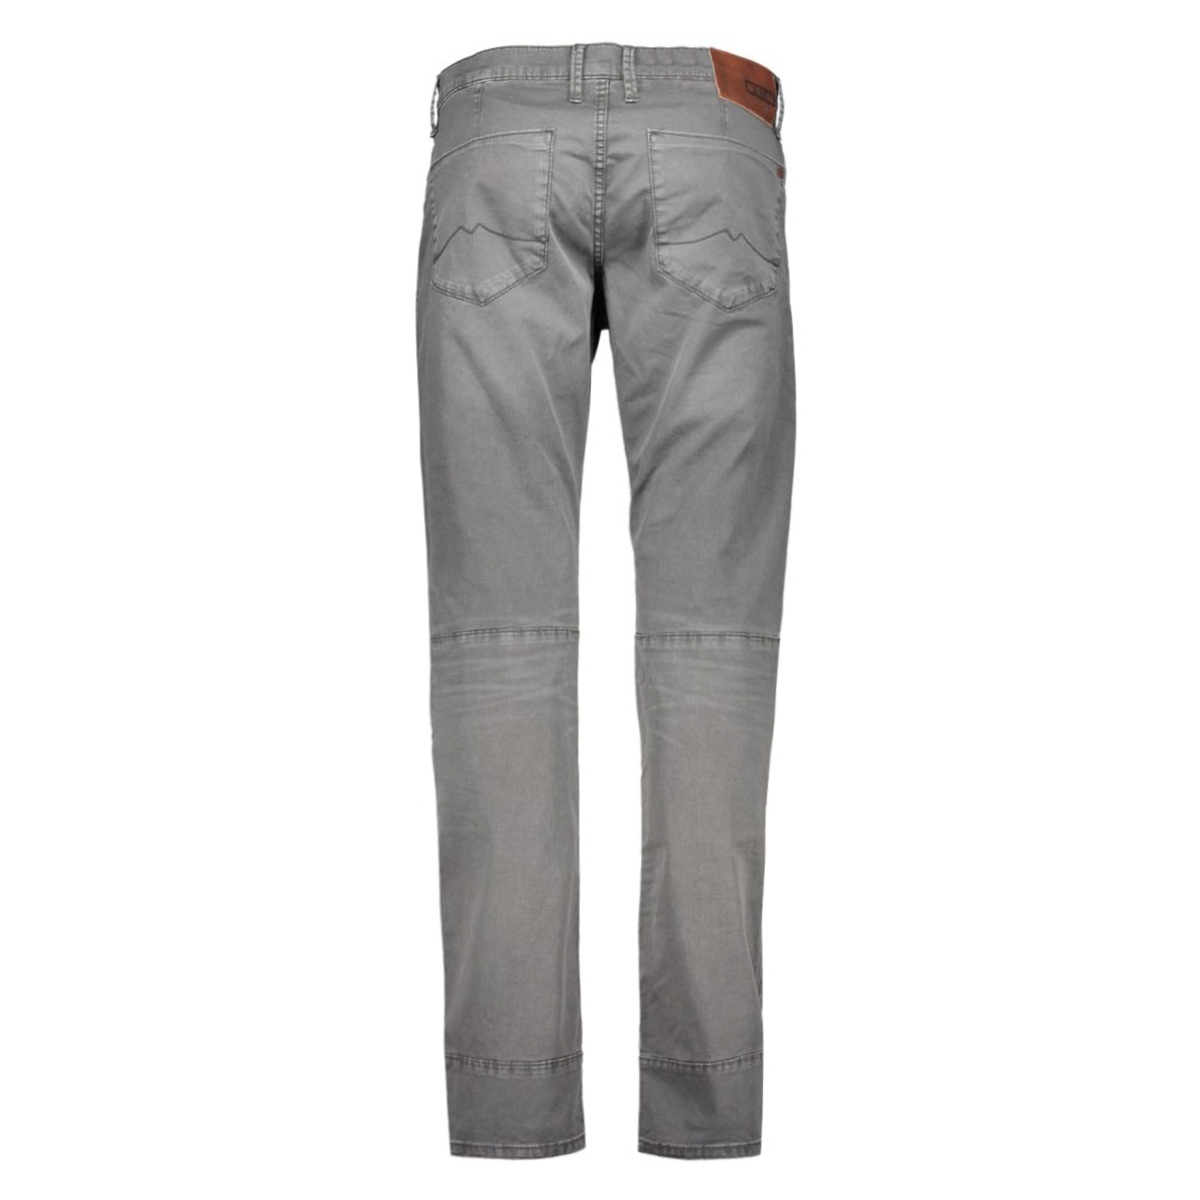 3131 6637 166 mustang jeans 166